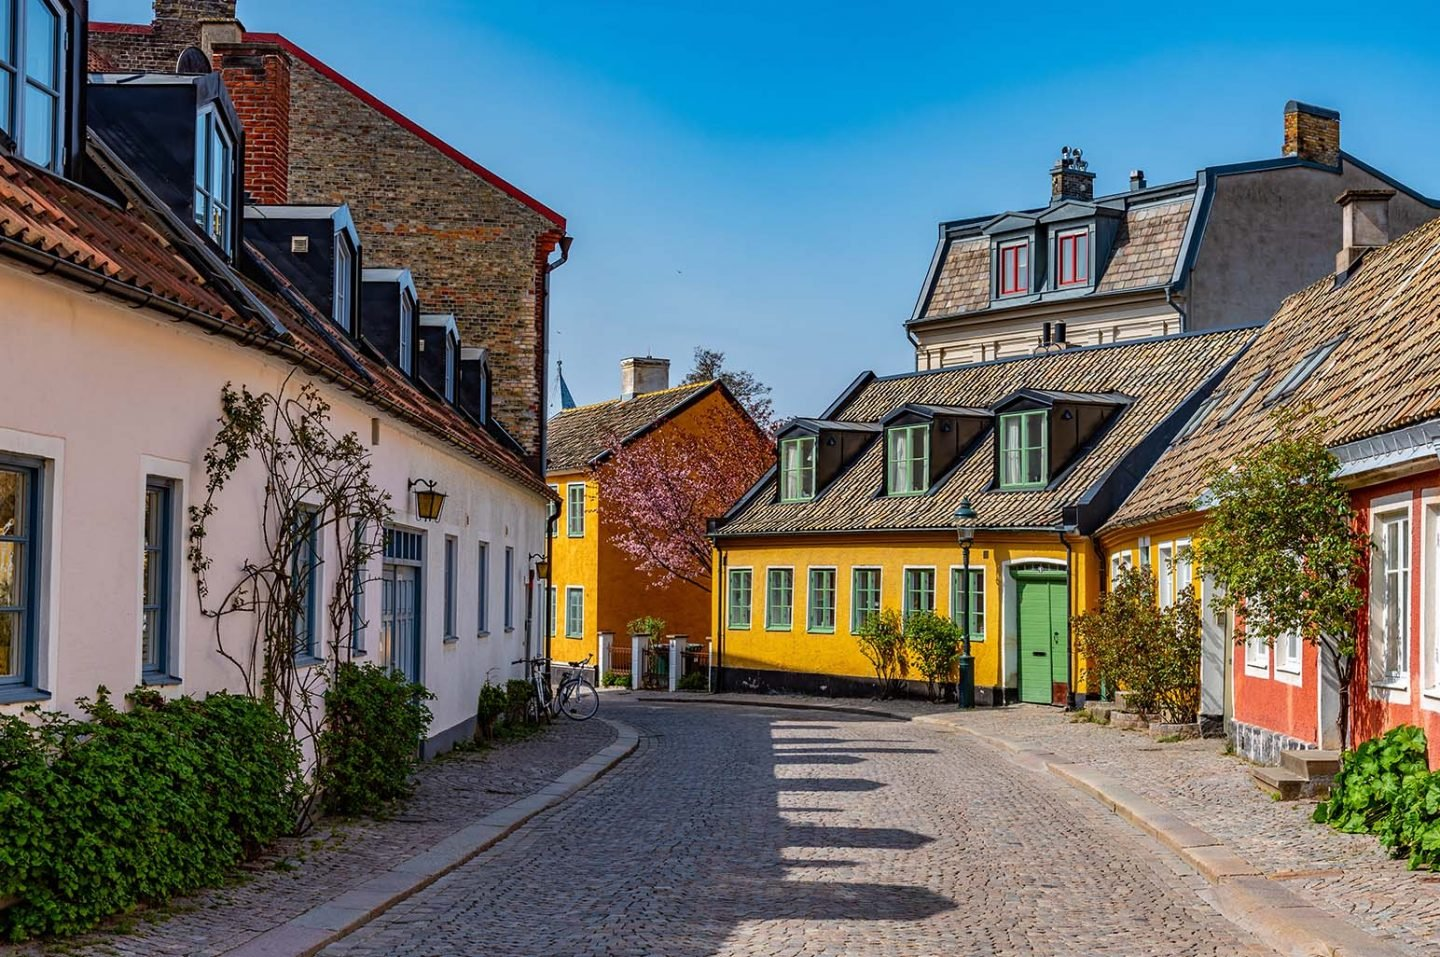 The Most Incredible Places to Visit in Scandinavia